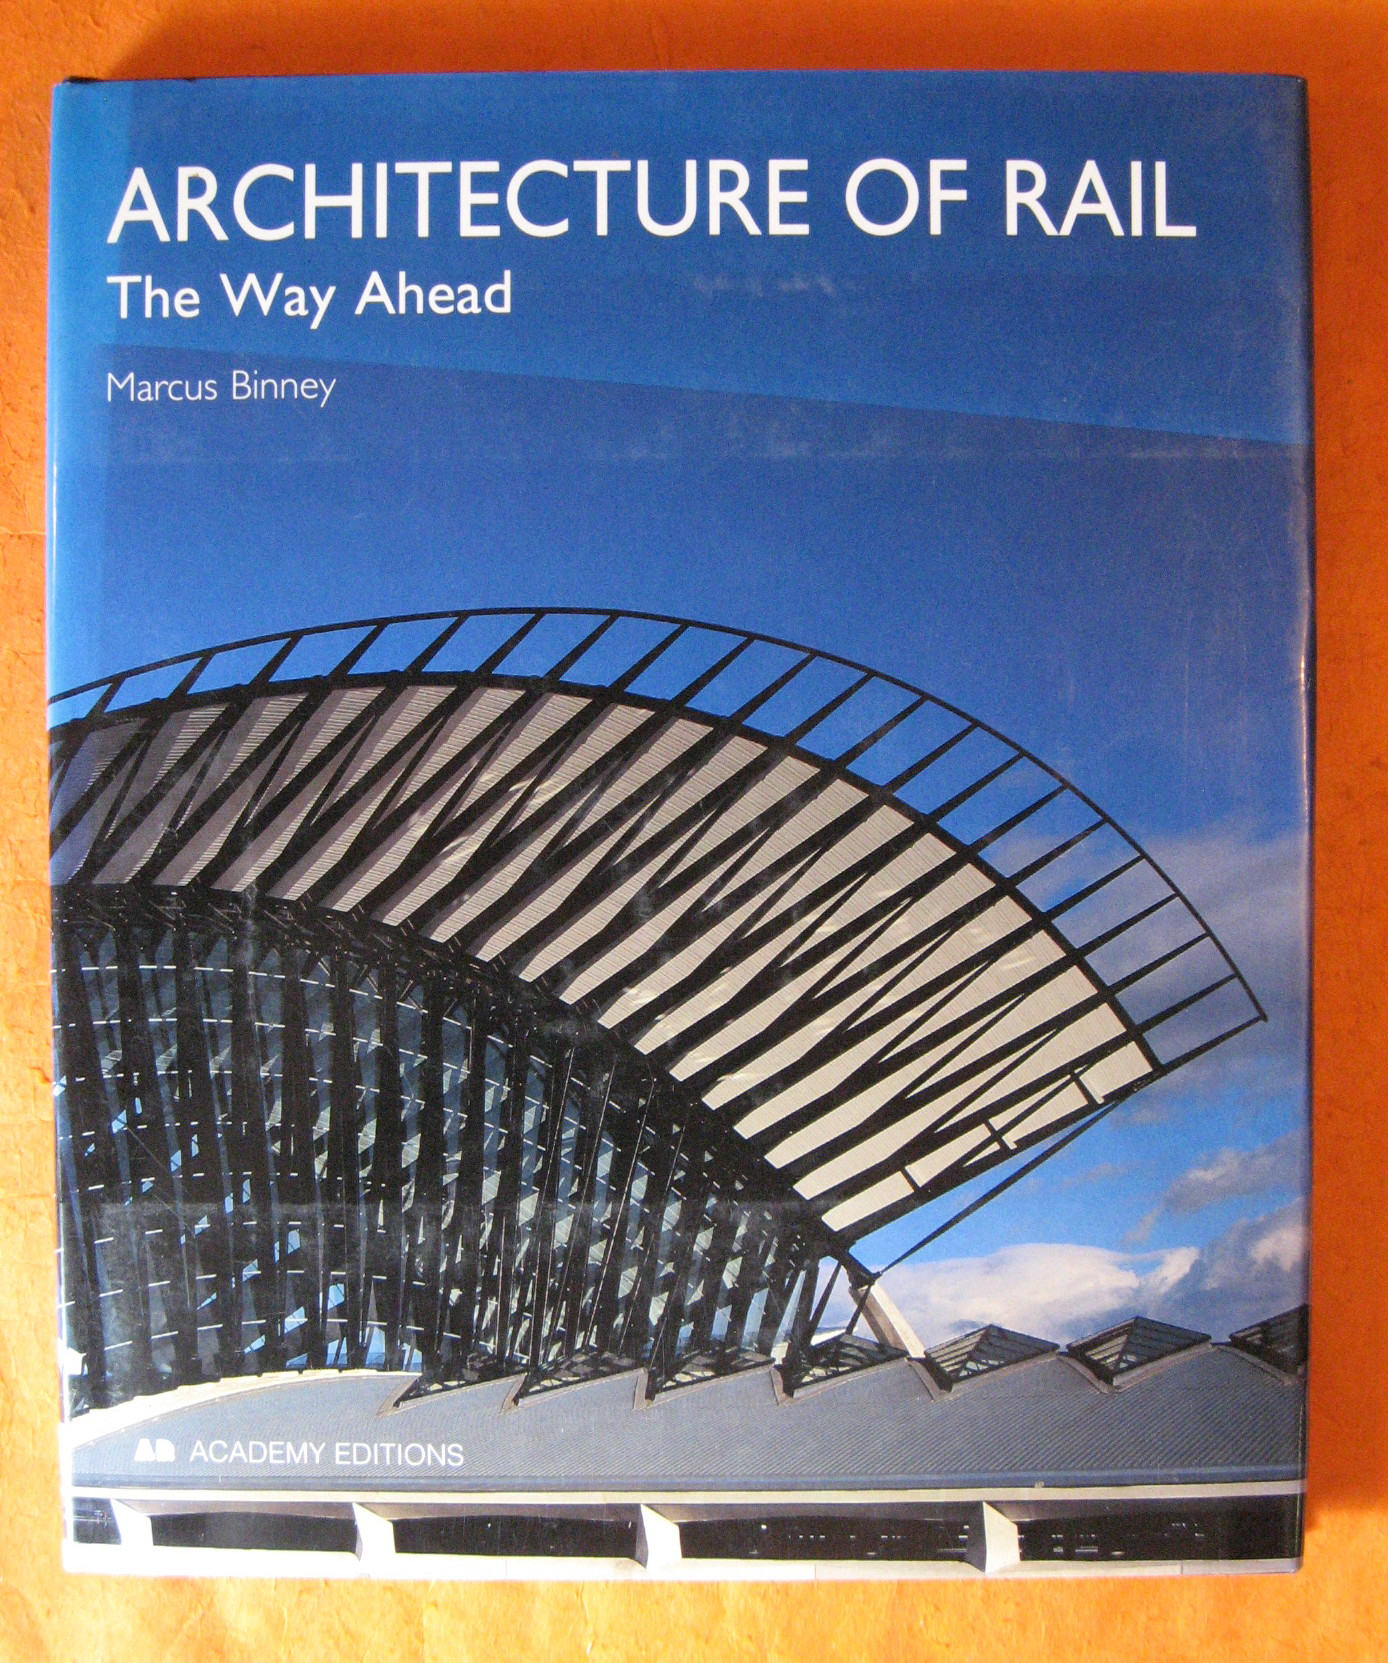 Architecture of Rail: The Way Ahead., Binney, Marcus